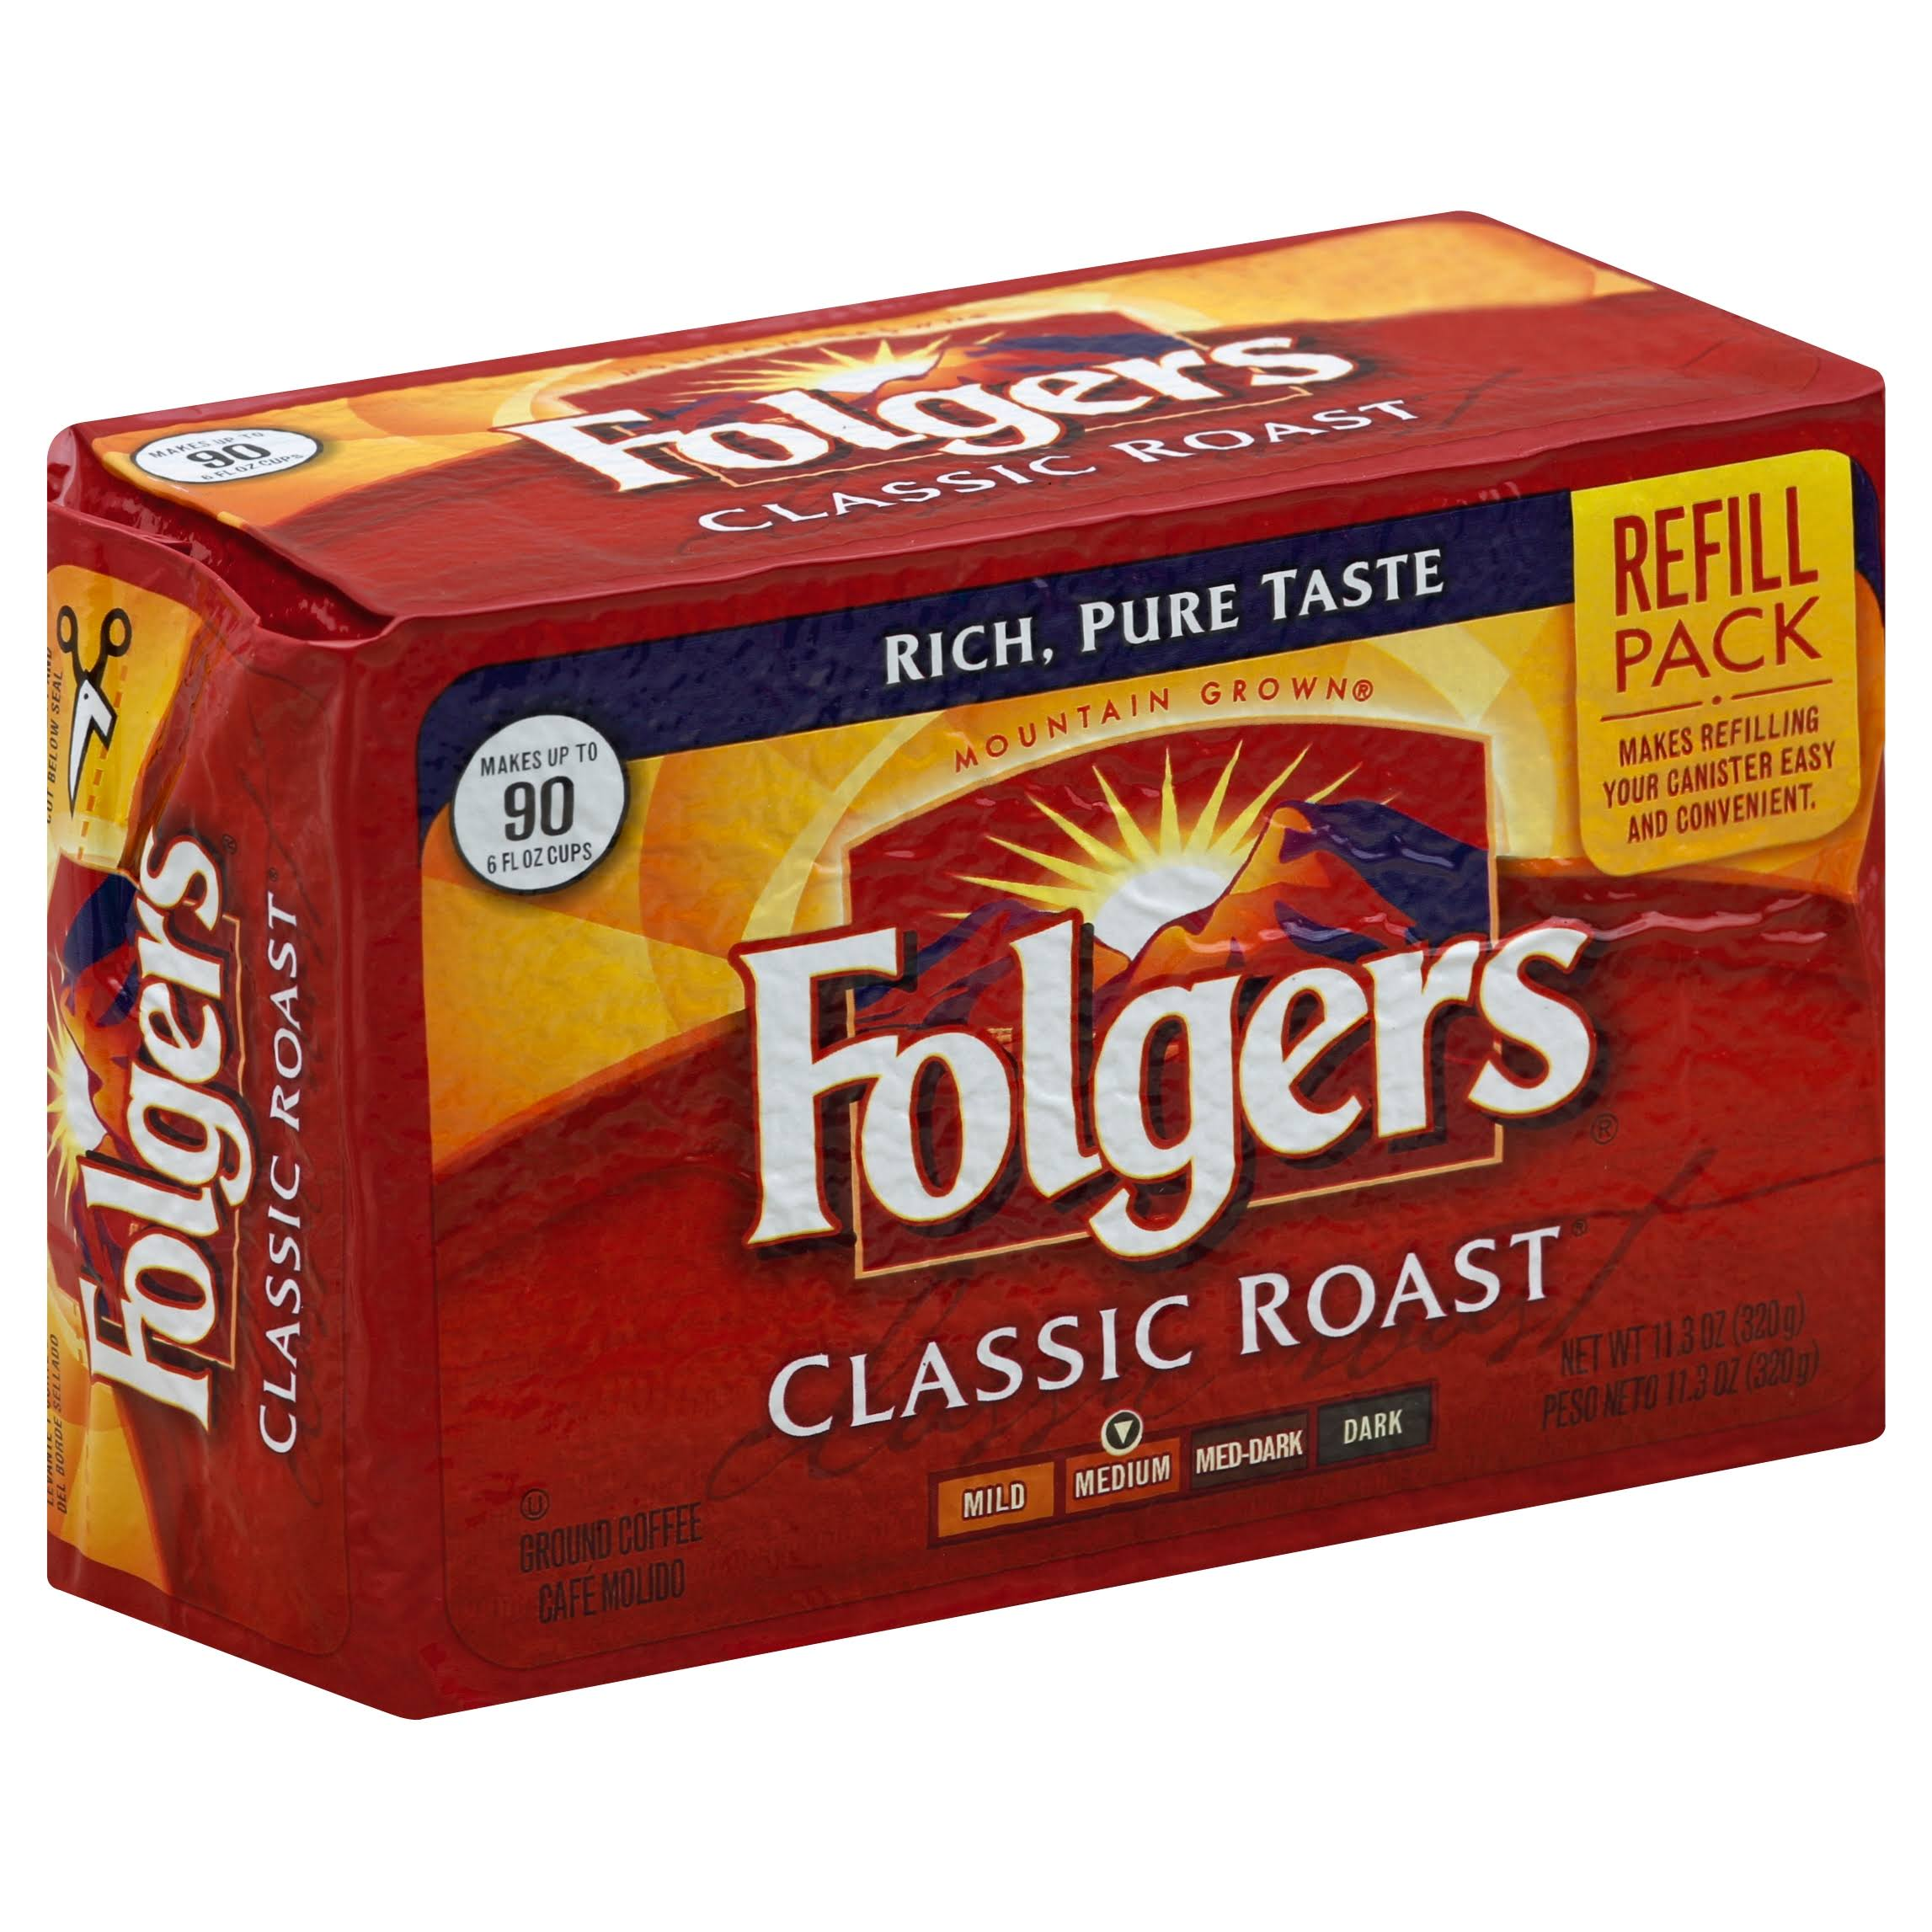 Folgers Mountain Grown Classic Roast Medium Ground Coffee - 11.3 oz